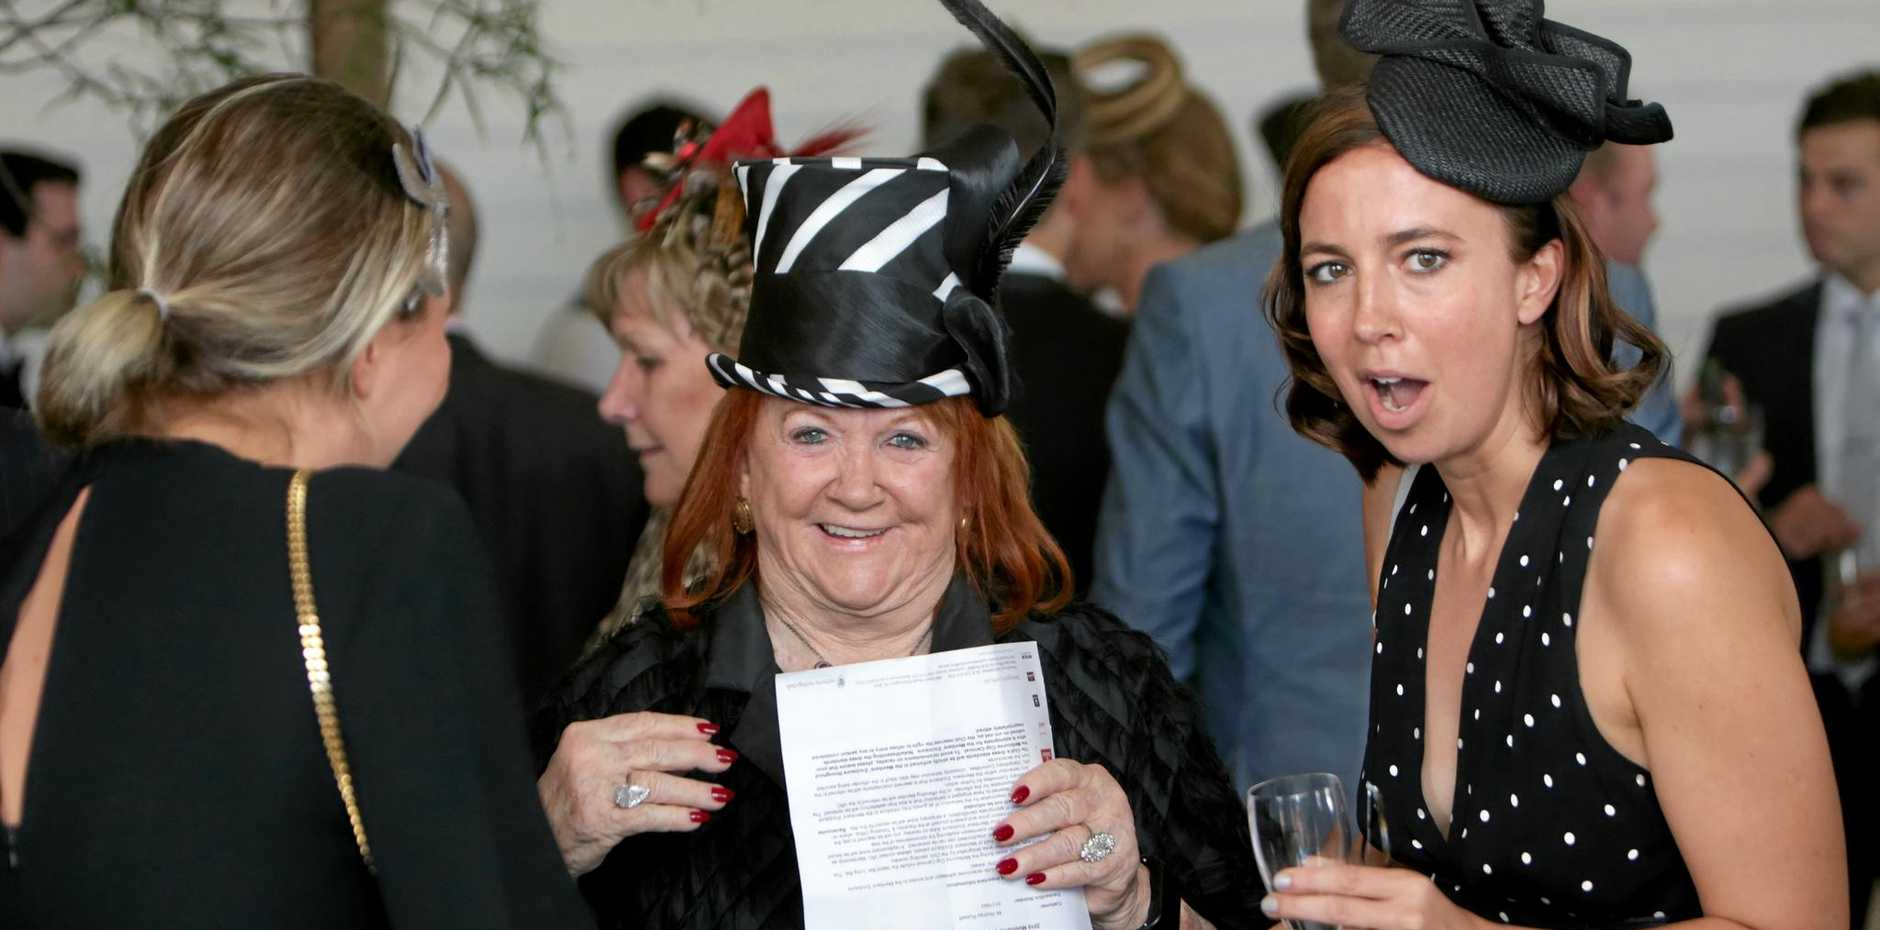 Eileen Bond in the Emirates Marquee during last year's Derby Day at Flemington. She has hit out at Channel 9's depiction of her 37-year marriage to tycoon Alan Bond in upcoming telemovie House of Bond.